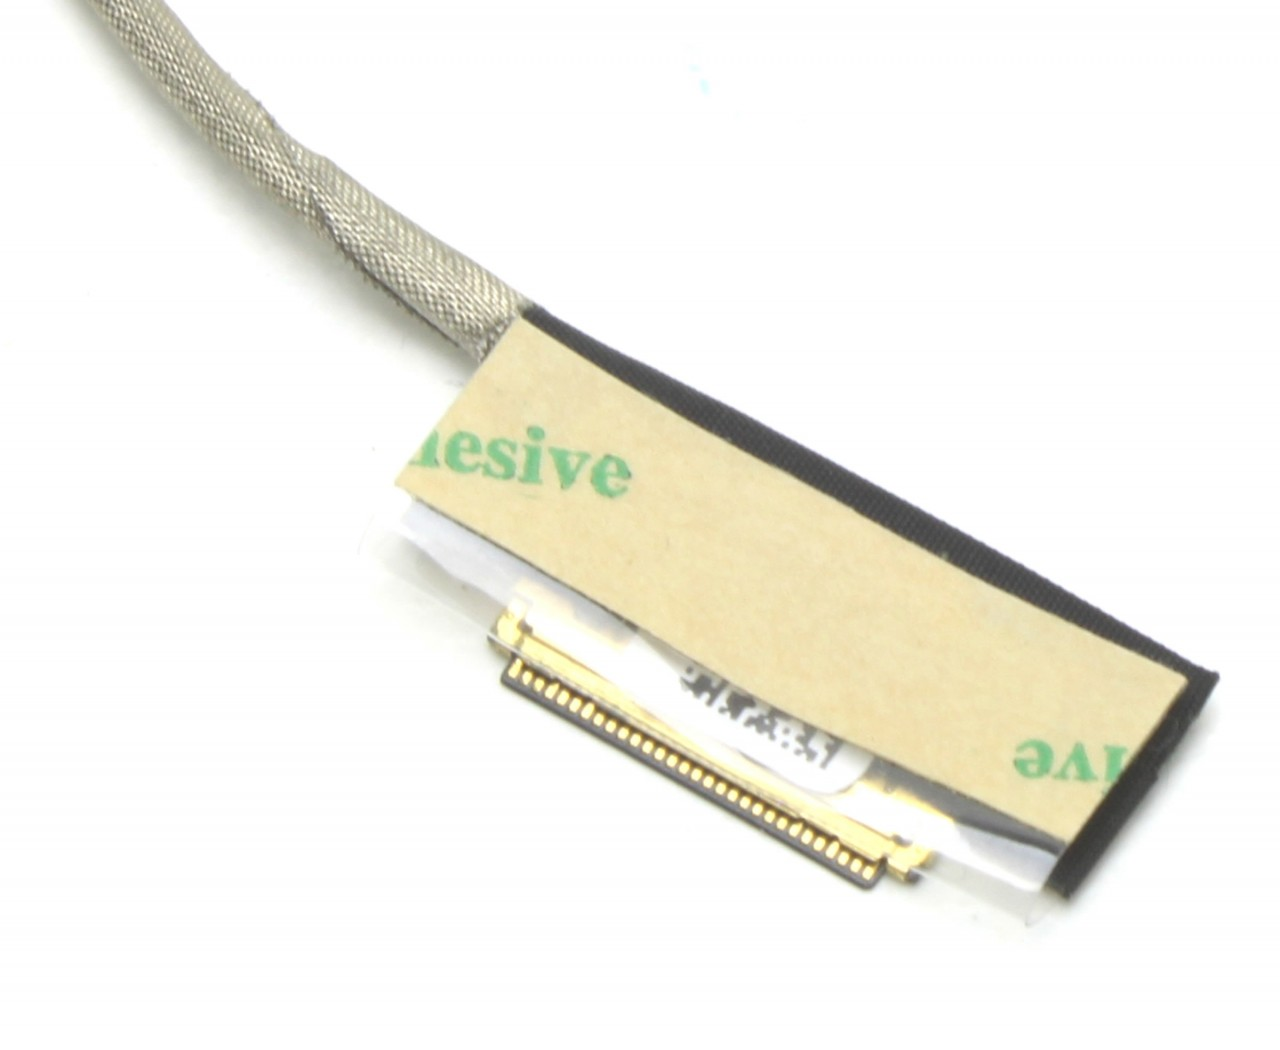 Cablu video LVDS Acer Travelmate P256 MG cu touchscreen imagine powerlaptop.ro 2021